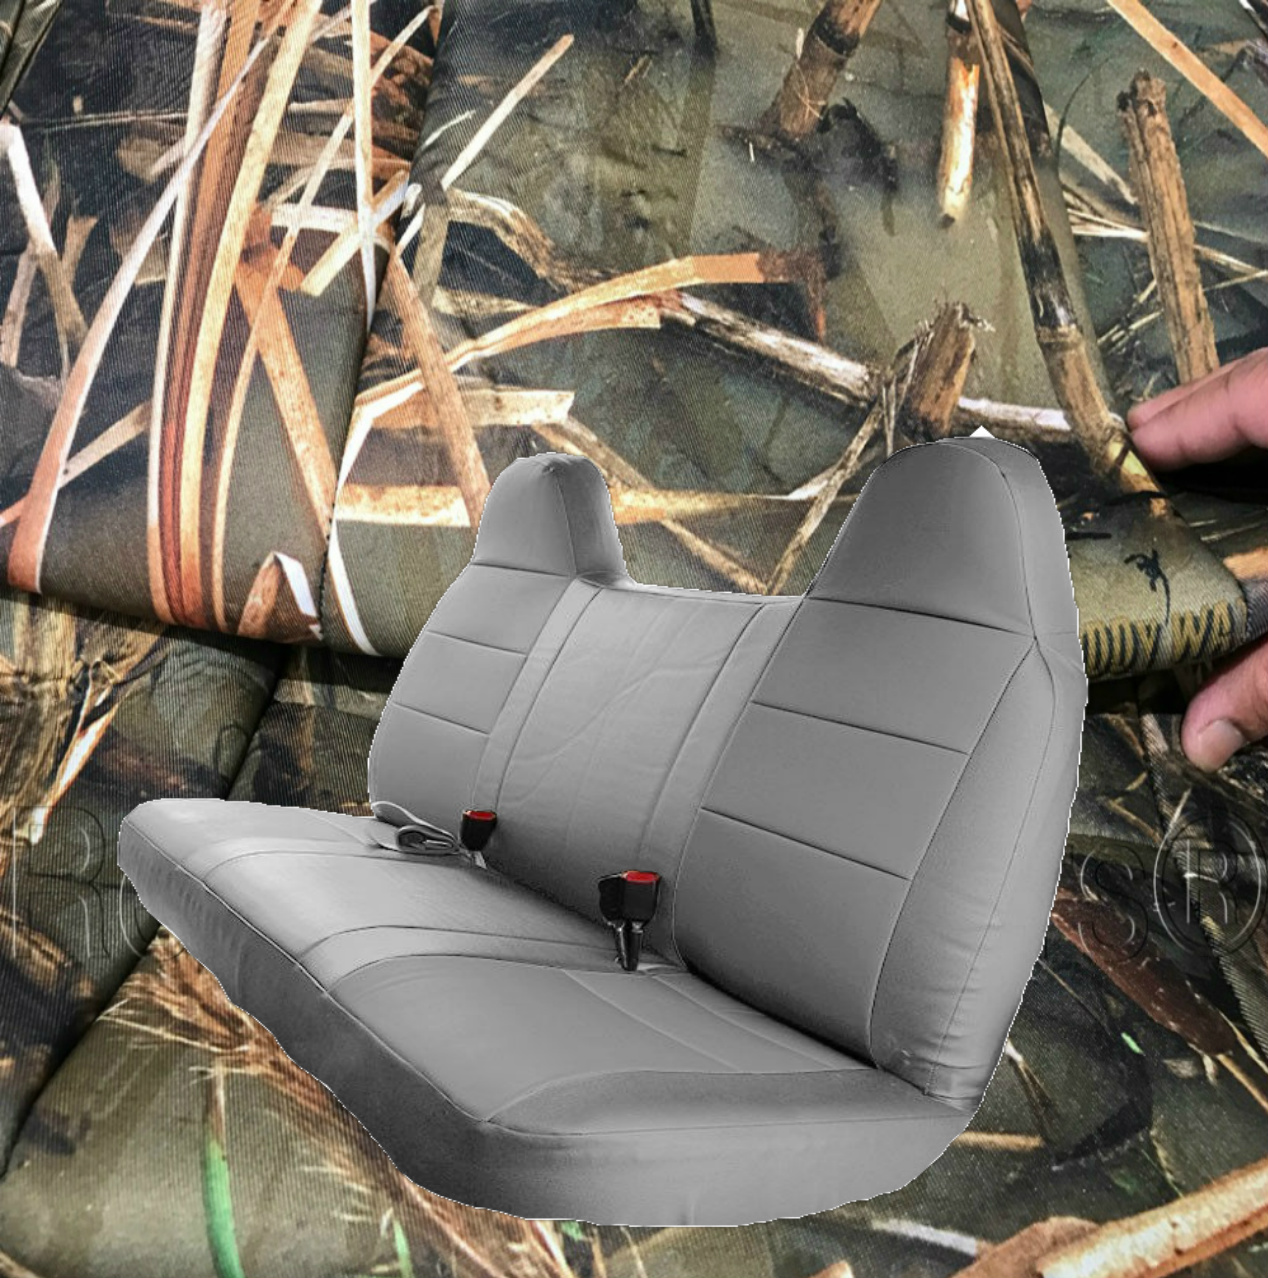 Beige Tan RealSeatCovers for Front Solid Bench Thick F23 Molded Headrest Belt Cutout Exact Fit Seat Cover for Ford F150 F250 F350 F450 F550 F-Series 1992-2010